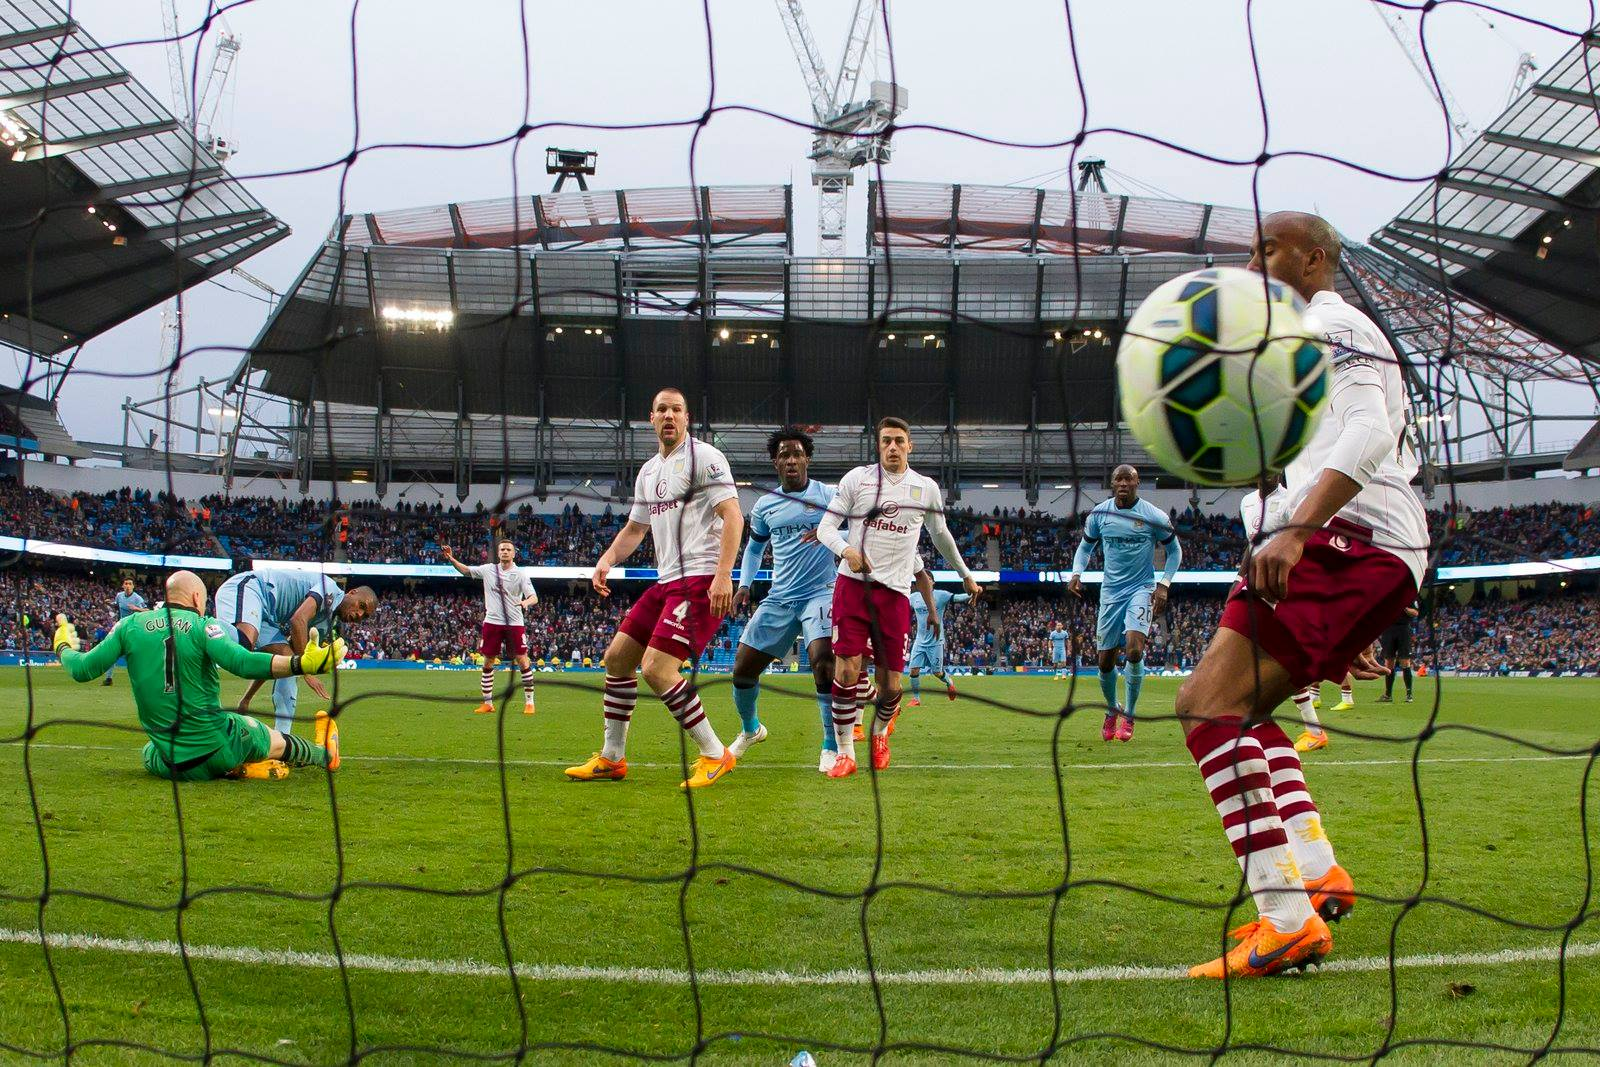 Nine out of nine points - Fernandinho smashes home a late goal against Villa during City's present three game winning run Courtesy@MCFC